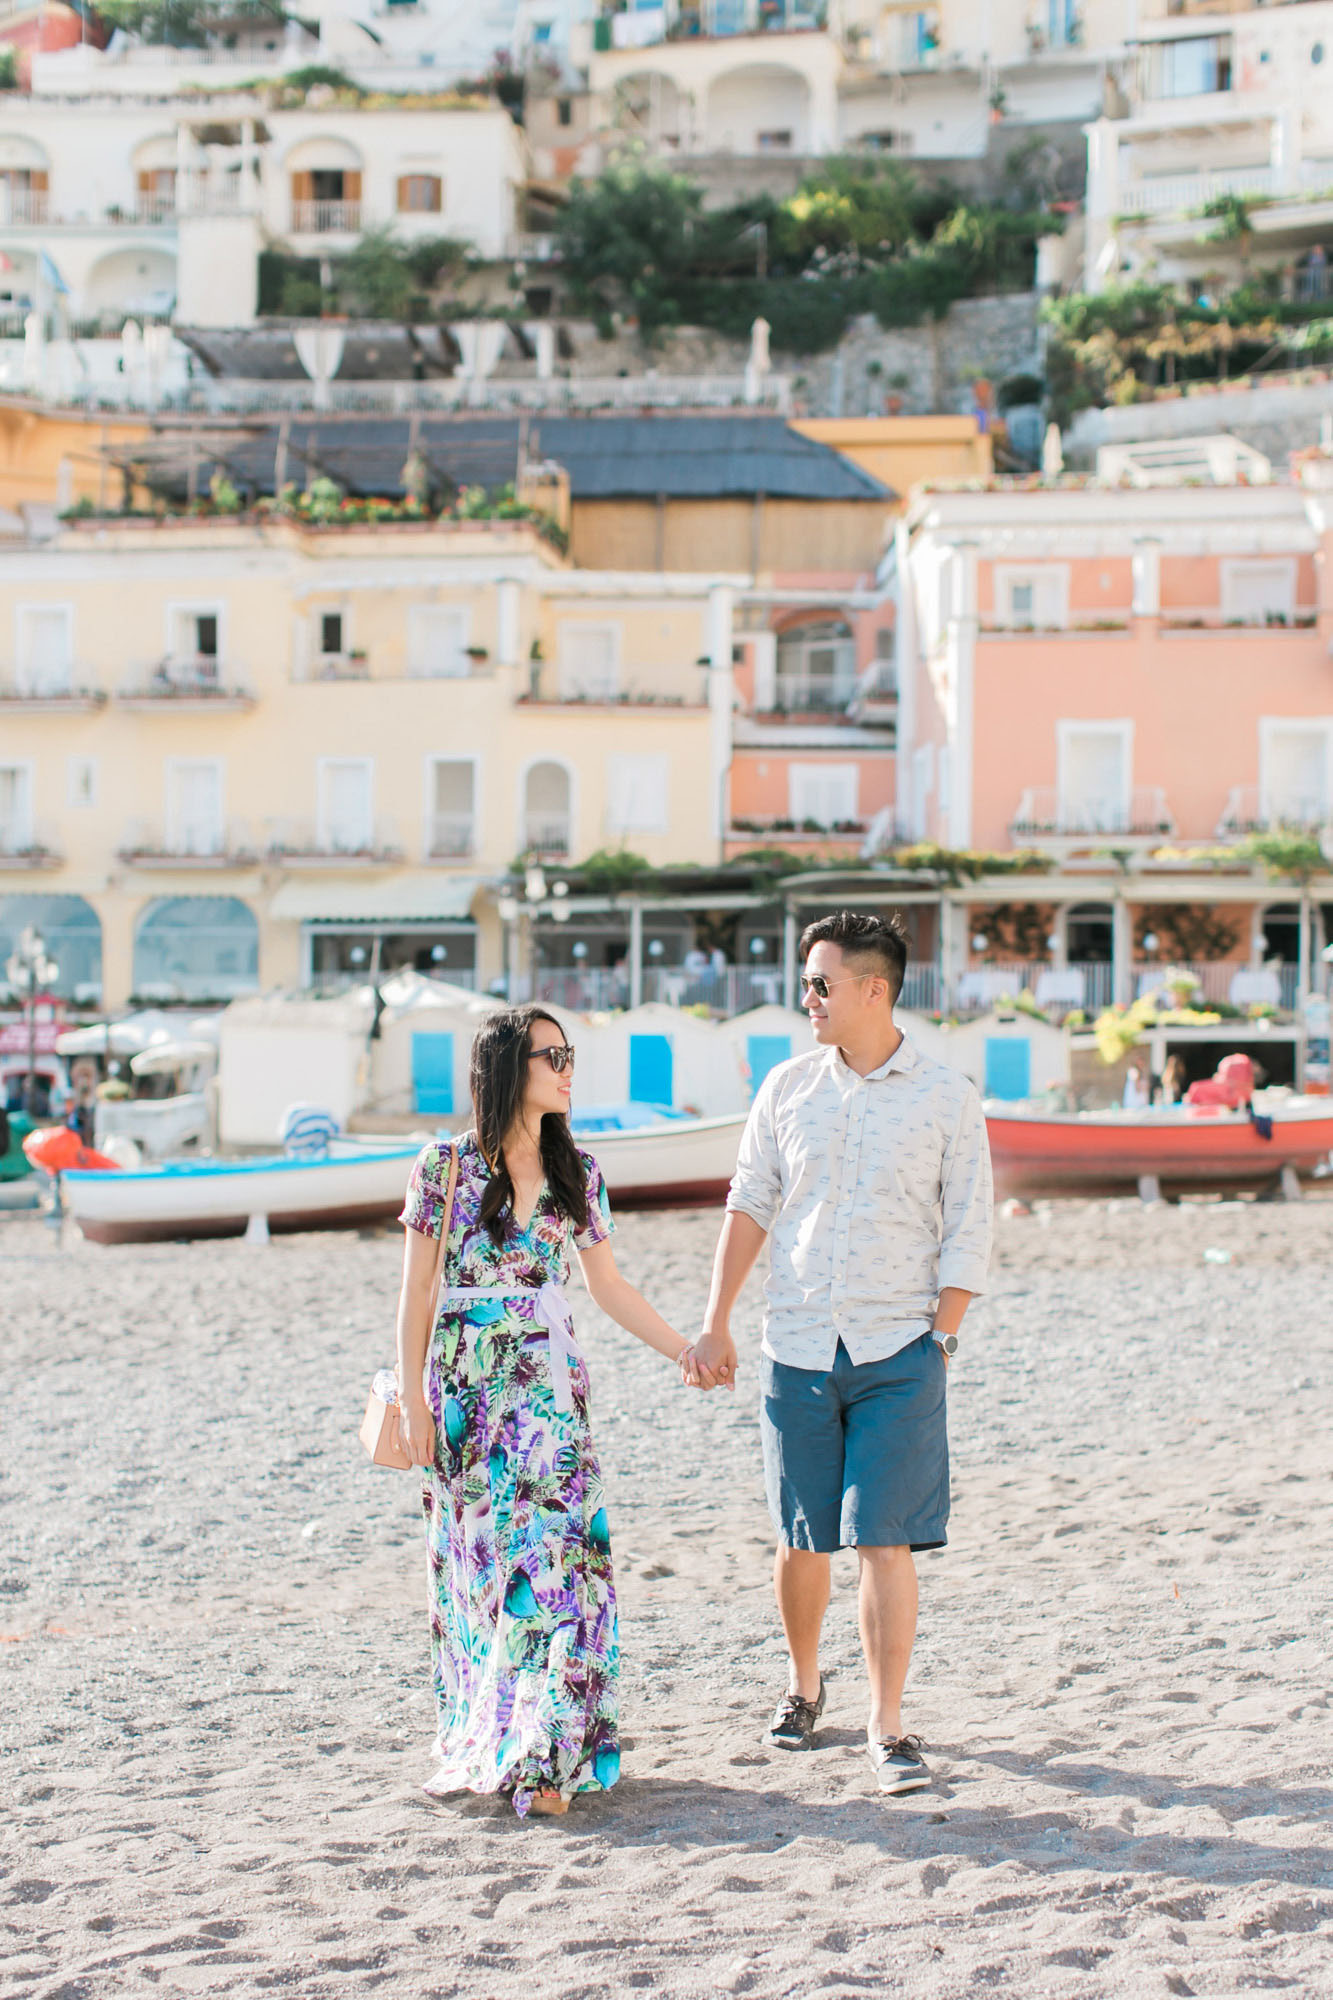 joeewong-reke-italy-amalfi-coast-positano-honeymoon-07